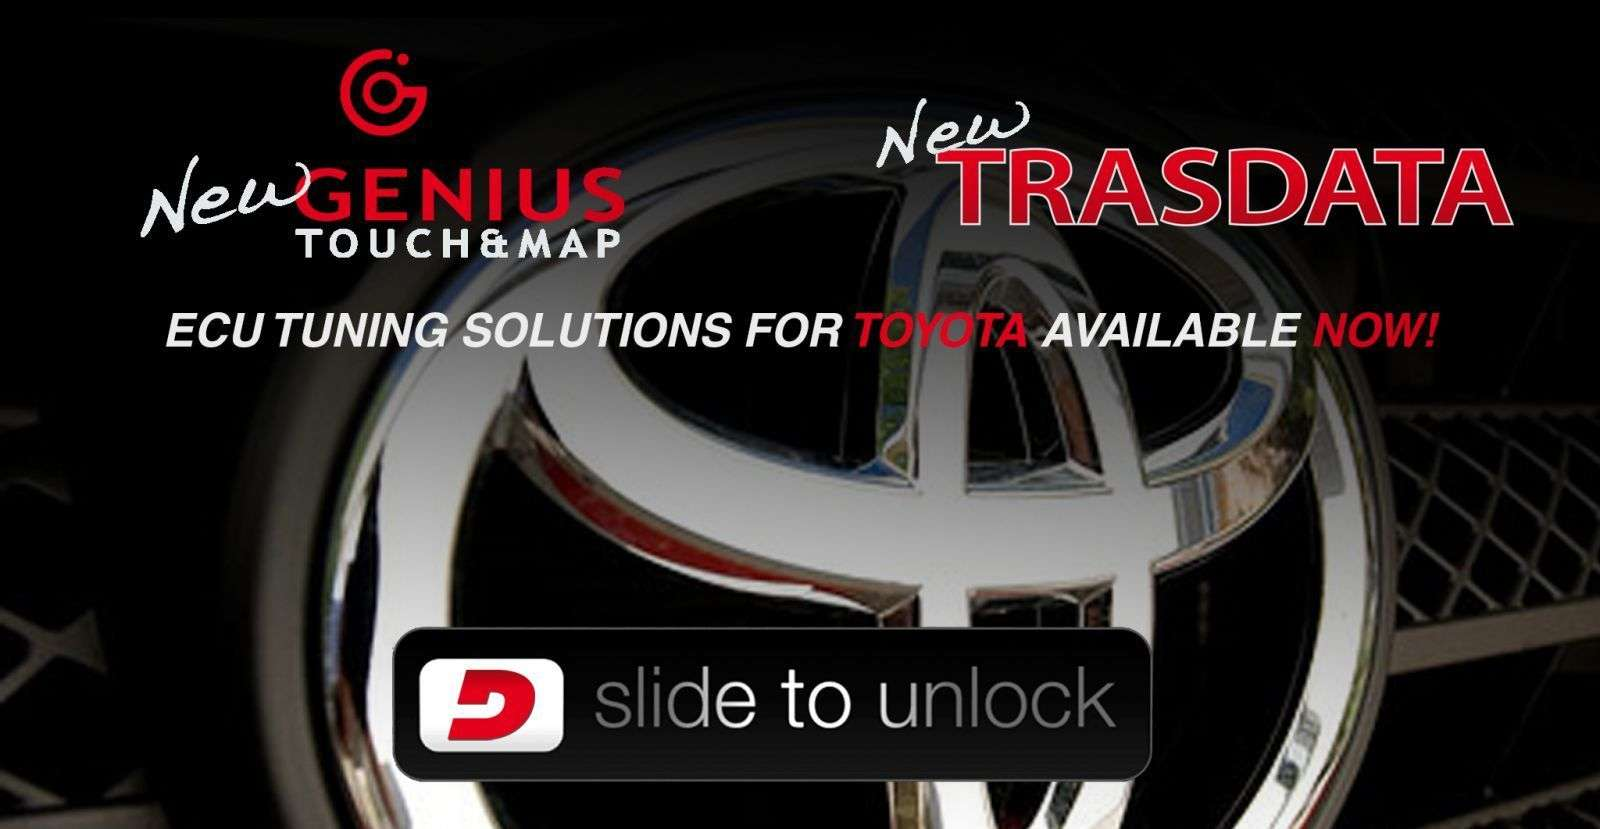 Toyota ECU tuning is now available!